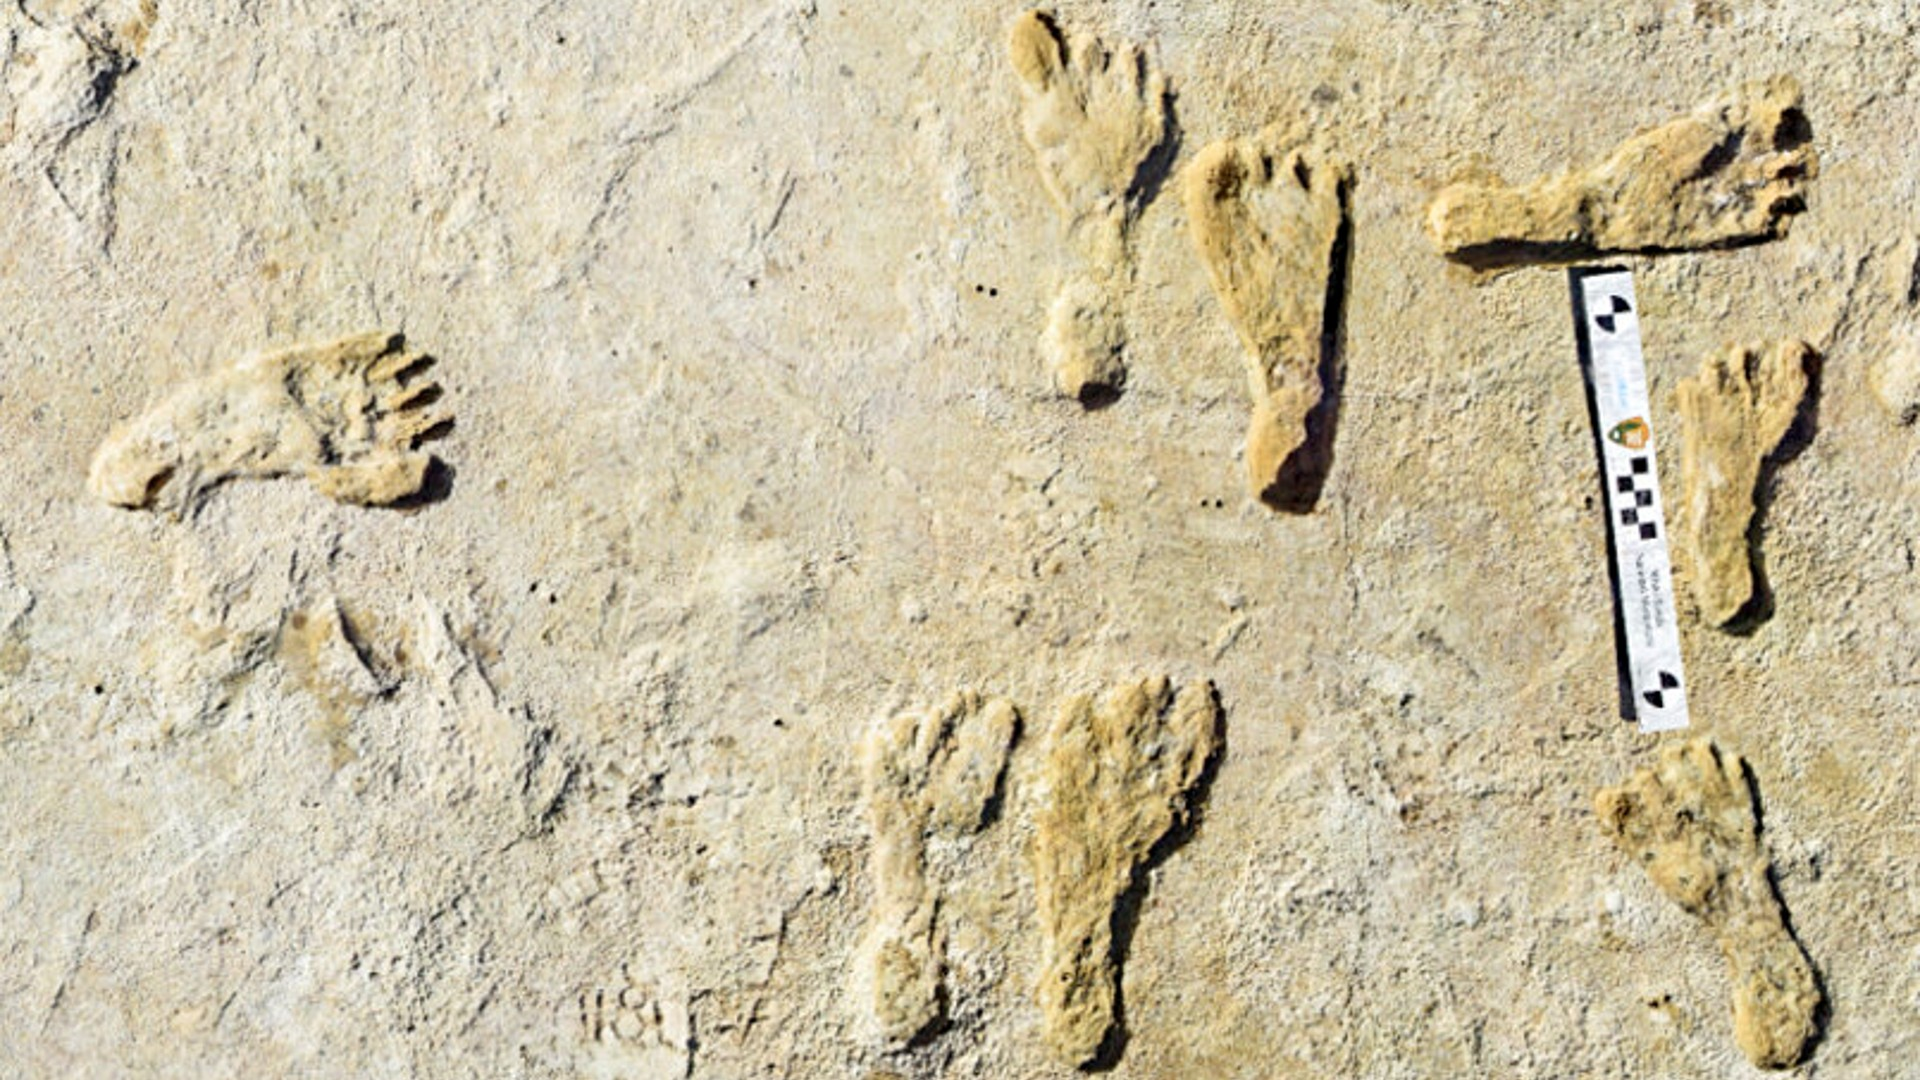 This undated photo made available by the National Park Service in September 2021 shows fossilized human fossilized footprints at the White Sands National Park in New Mexico. (NPS via AP)